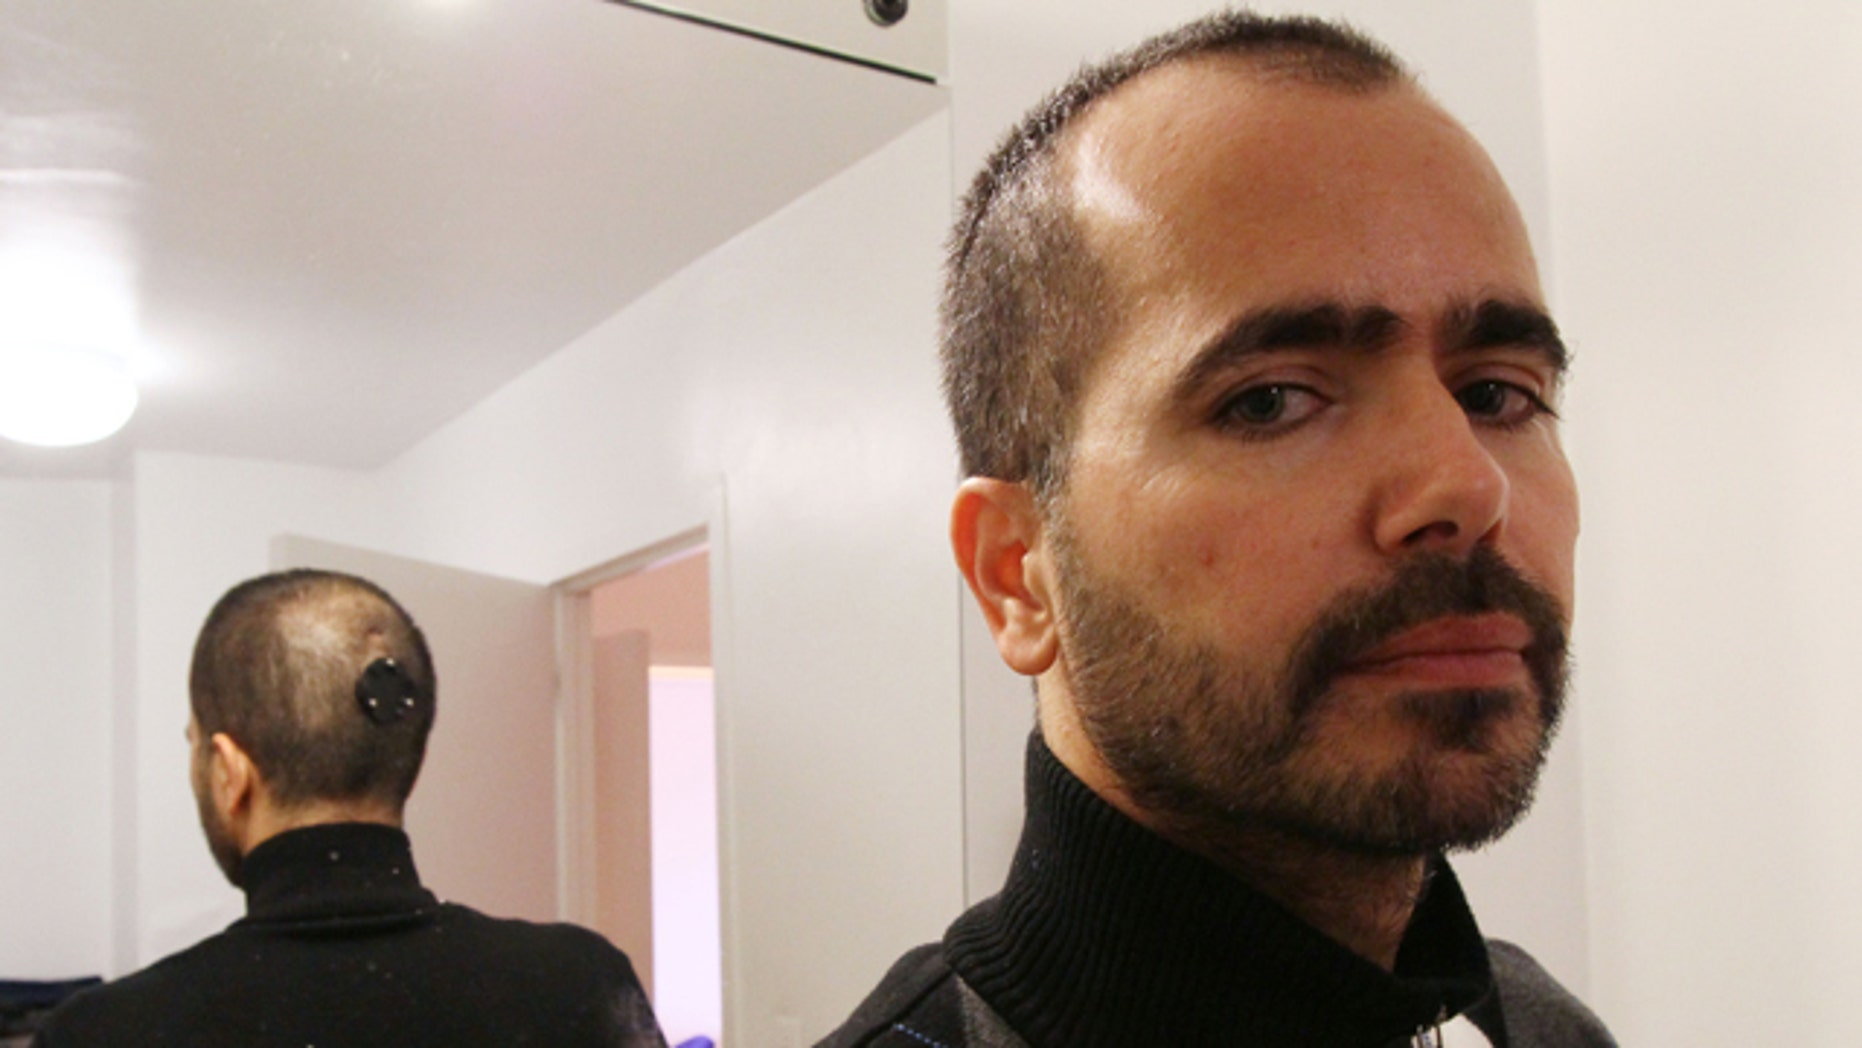 """With the back of his head reflected in a mirror, artist Wafaa Bilal poses for a photograph Thursday, Dec. 2, 2010 in New York. Bilal had a mount for a camera surgically implanted into the back of his head for his art project """"The 3rd I""""."""